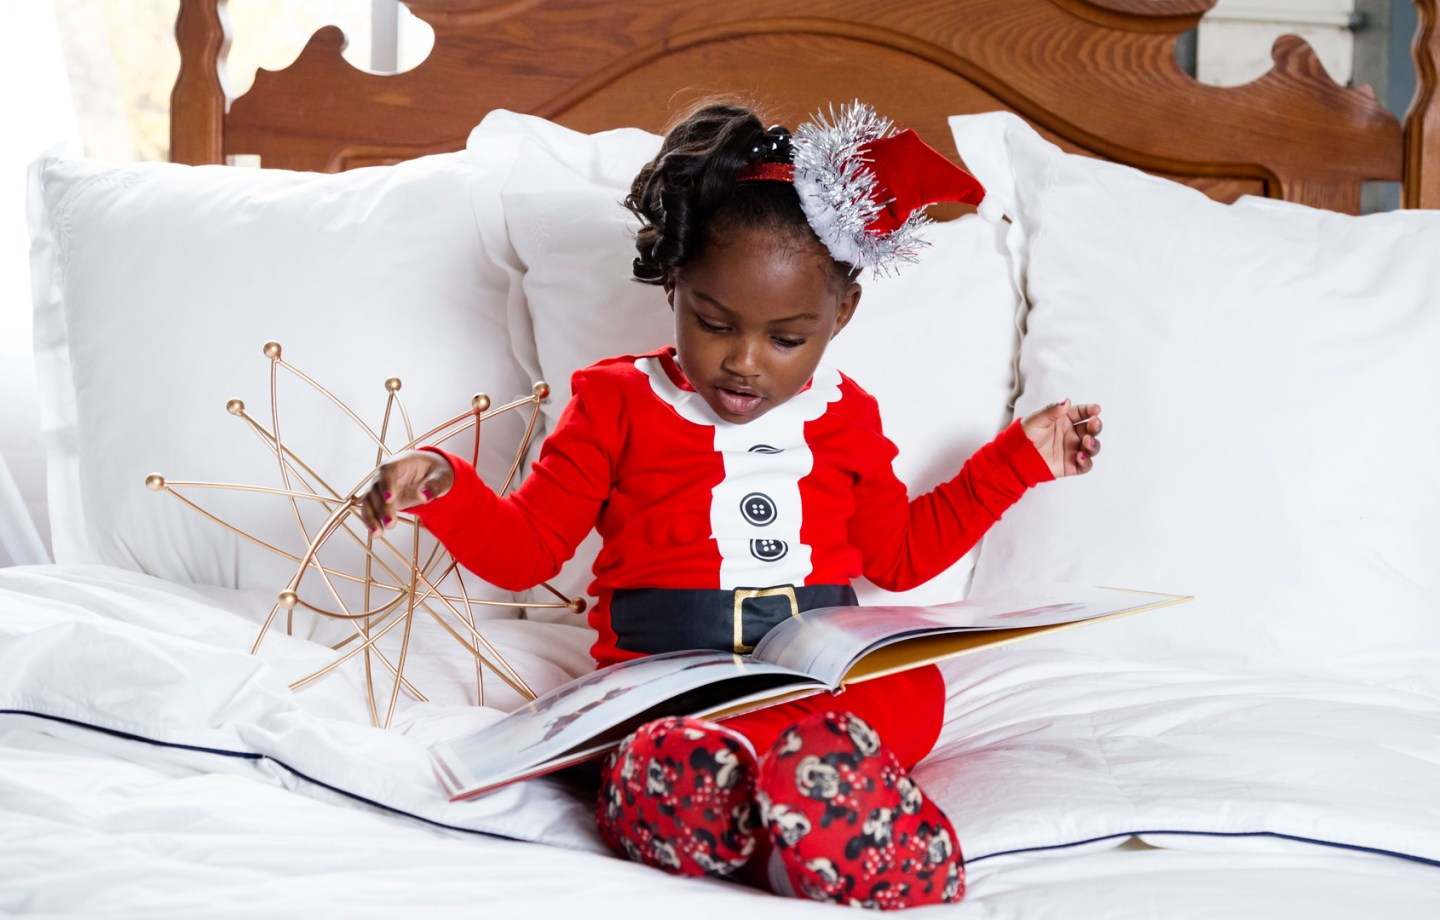 ttkqw1o3oi1mbmufq181_big Mommy & Me Christmas PJ Session in Greensboro, NC